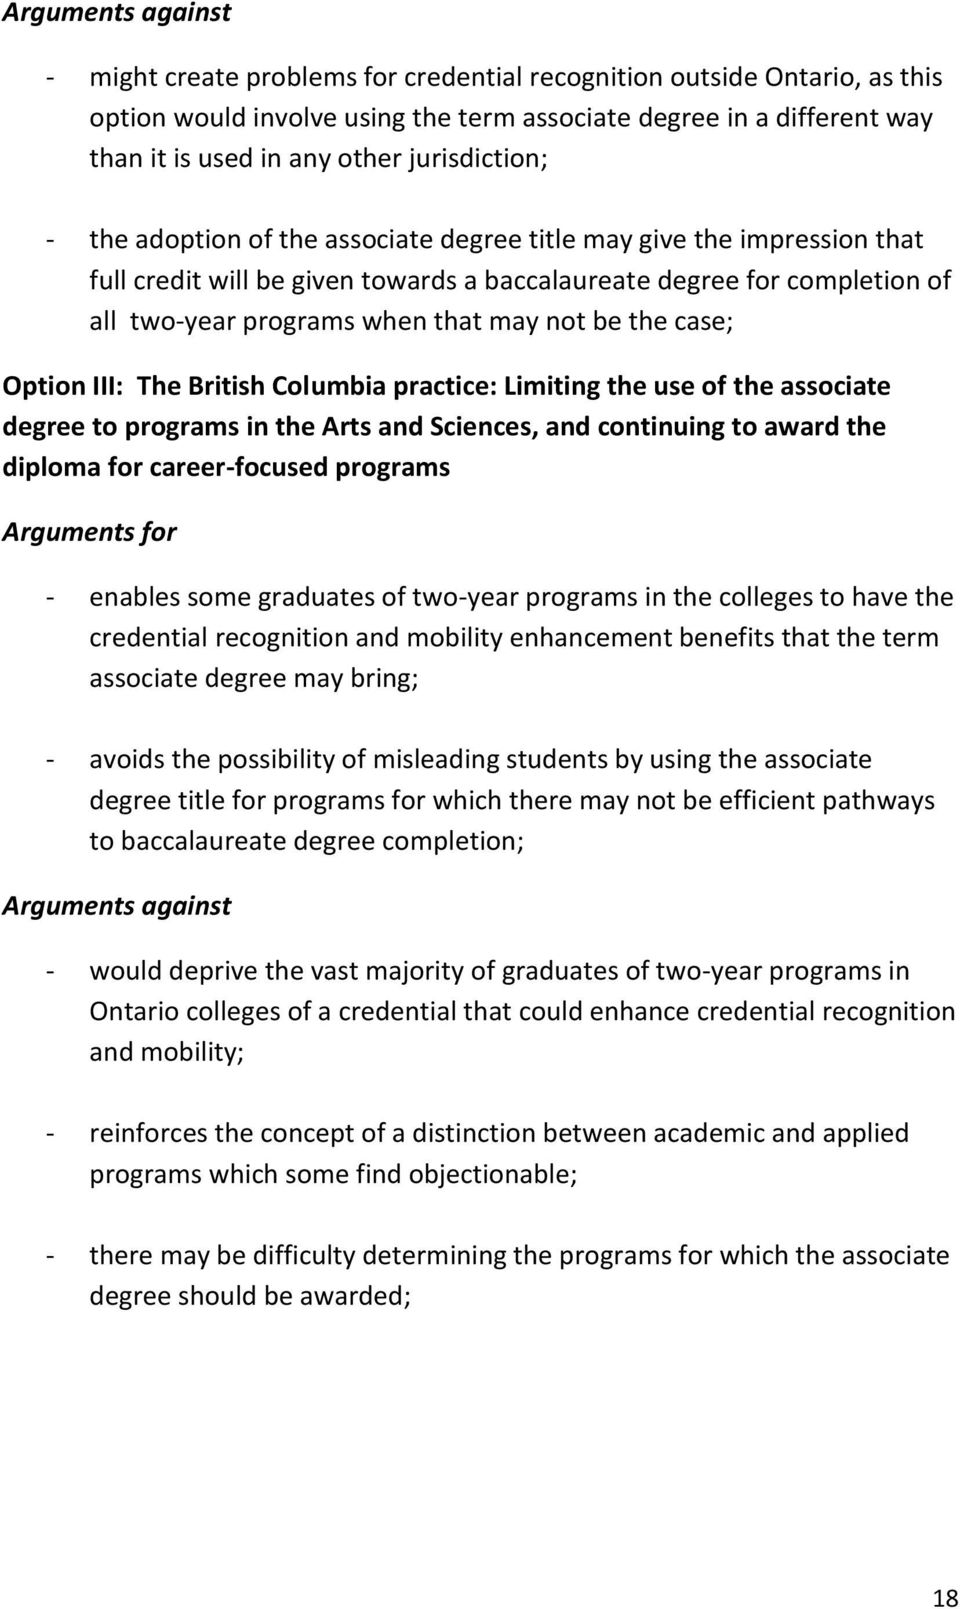 not be the case; Option III: The British Columbia practice: Limiting the use of the associate degree to programs in the Arts and Sciences, and continuing to award the diploma for career-focused